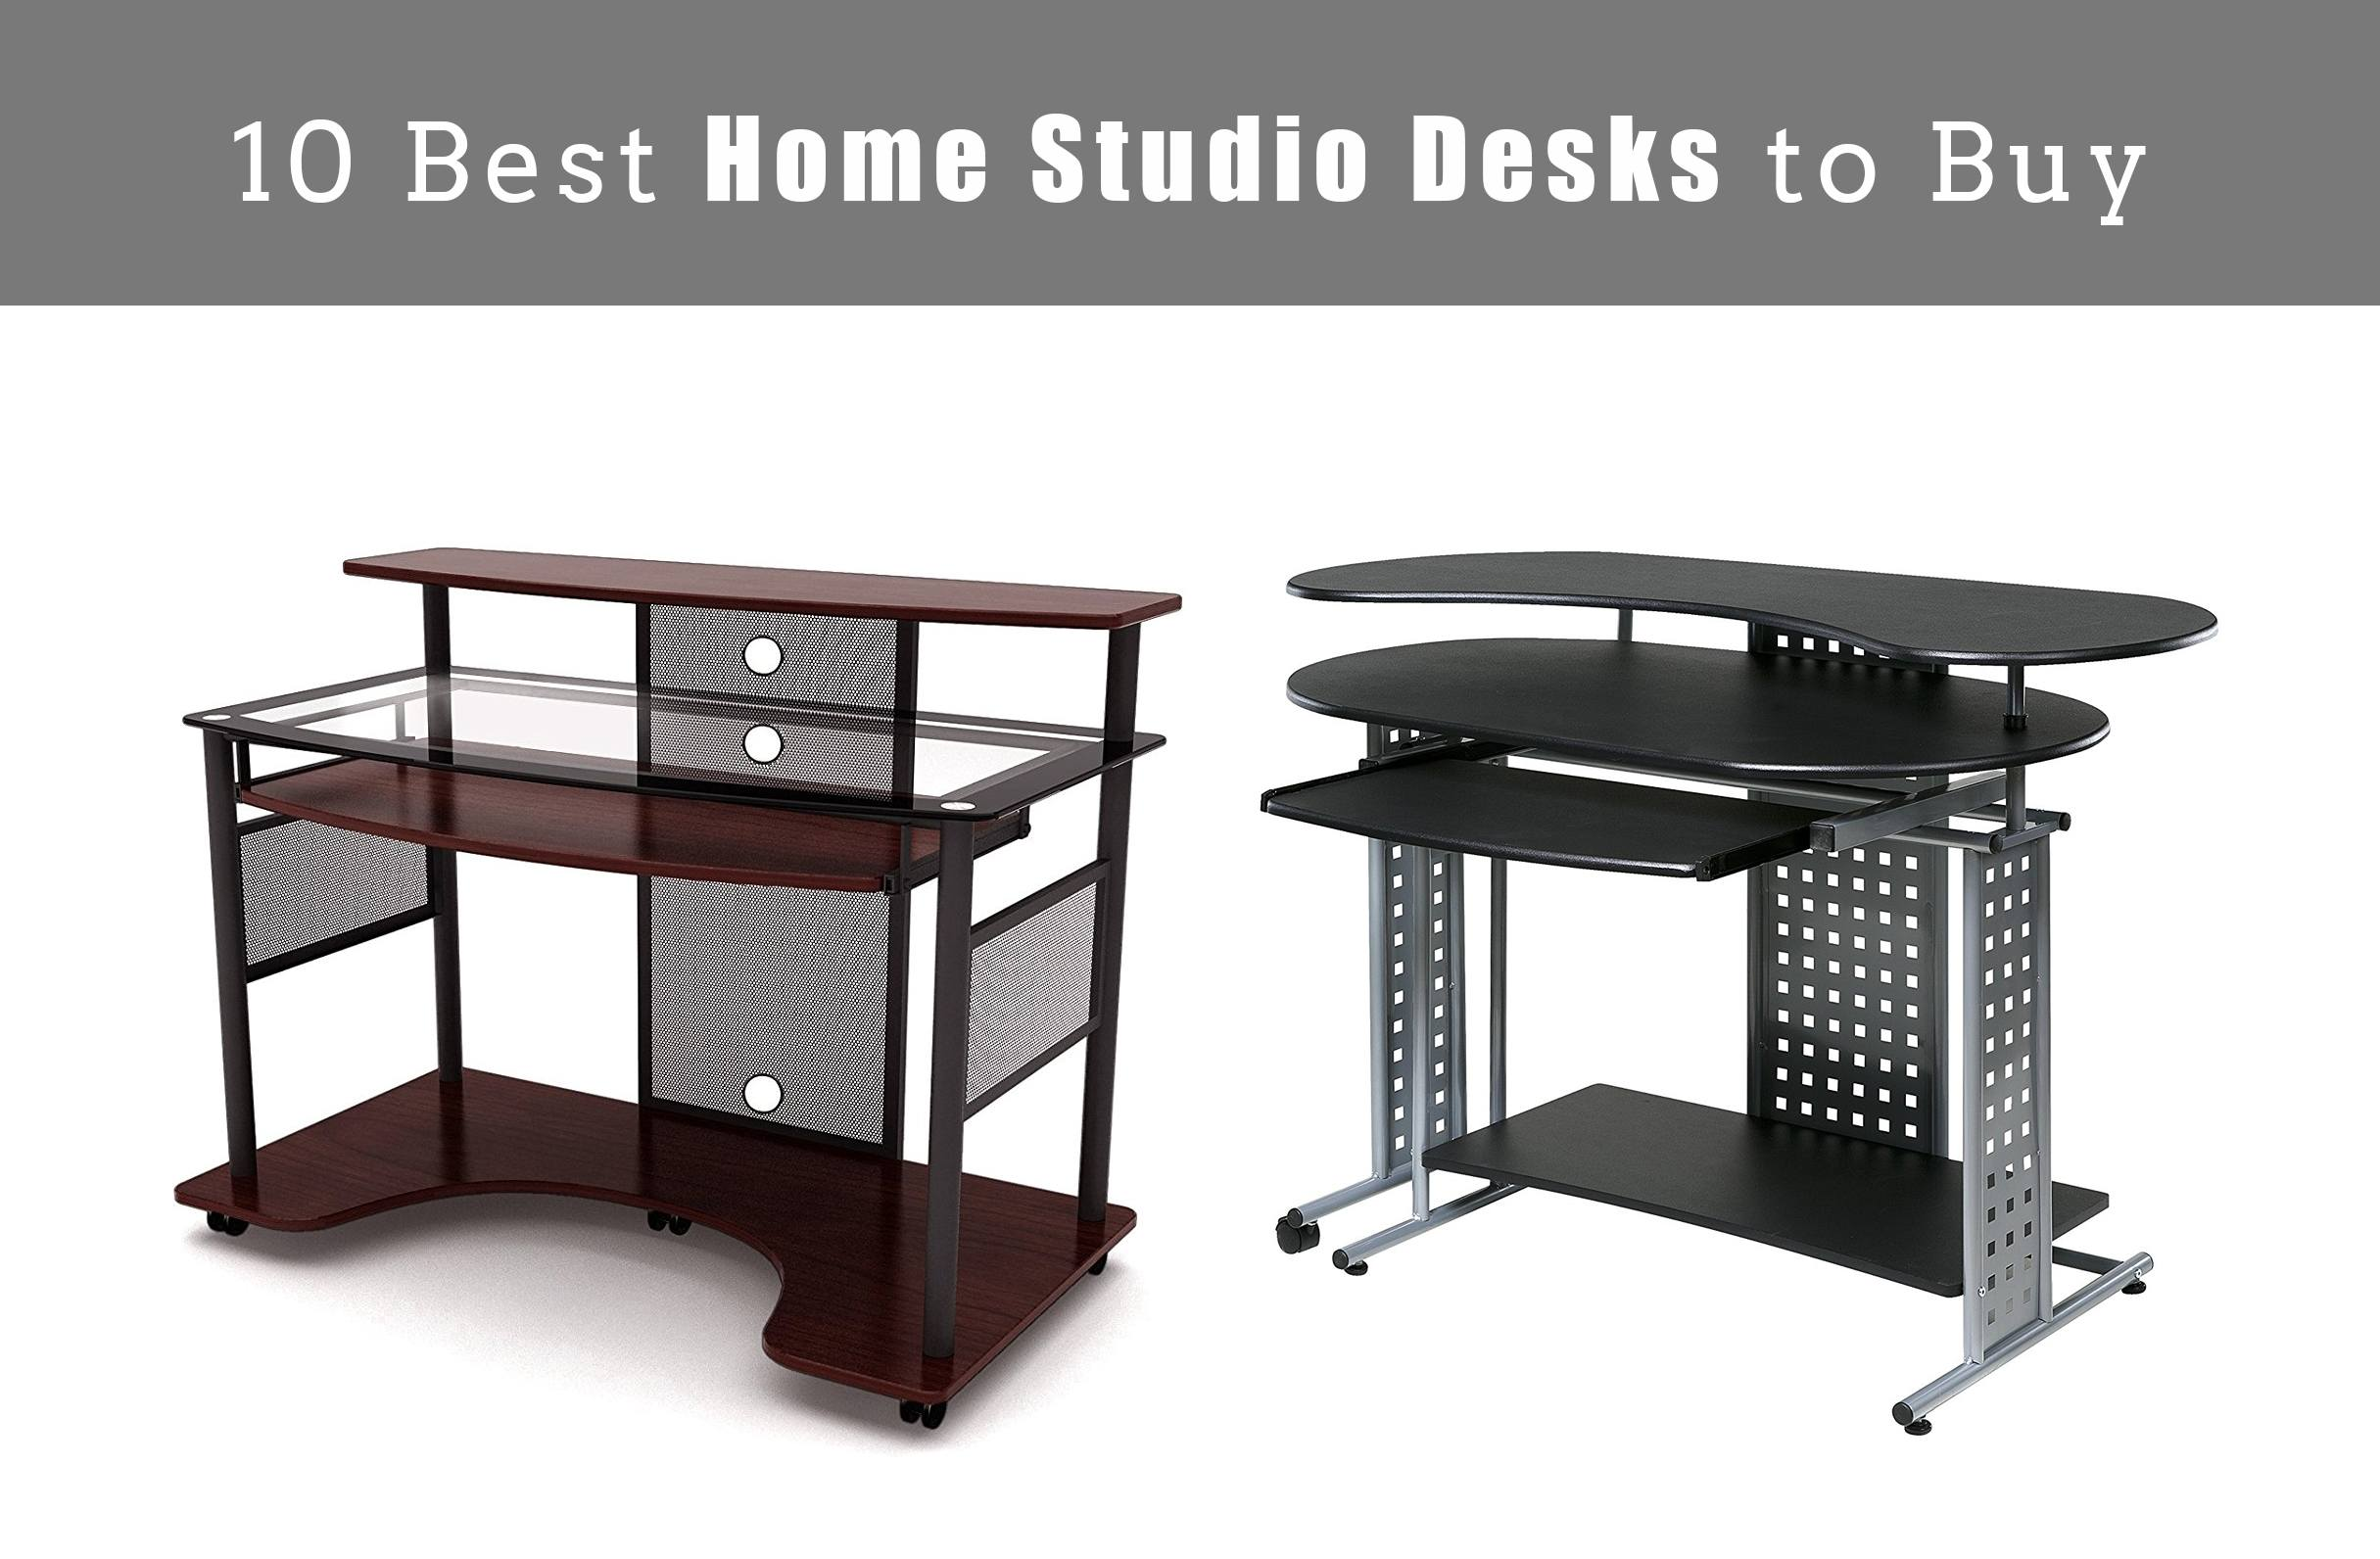 10 Best Home Studio Desks to Buy in 2018